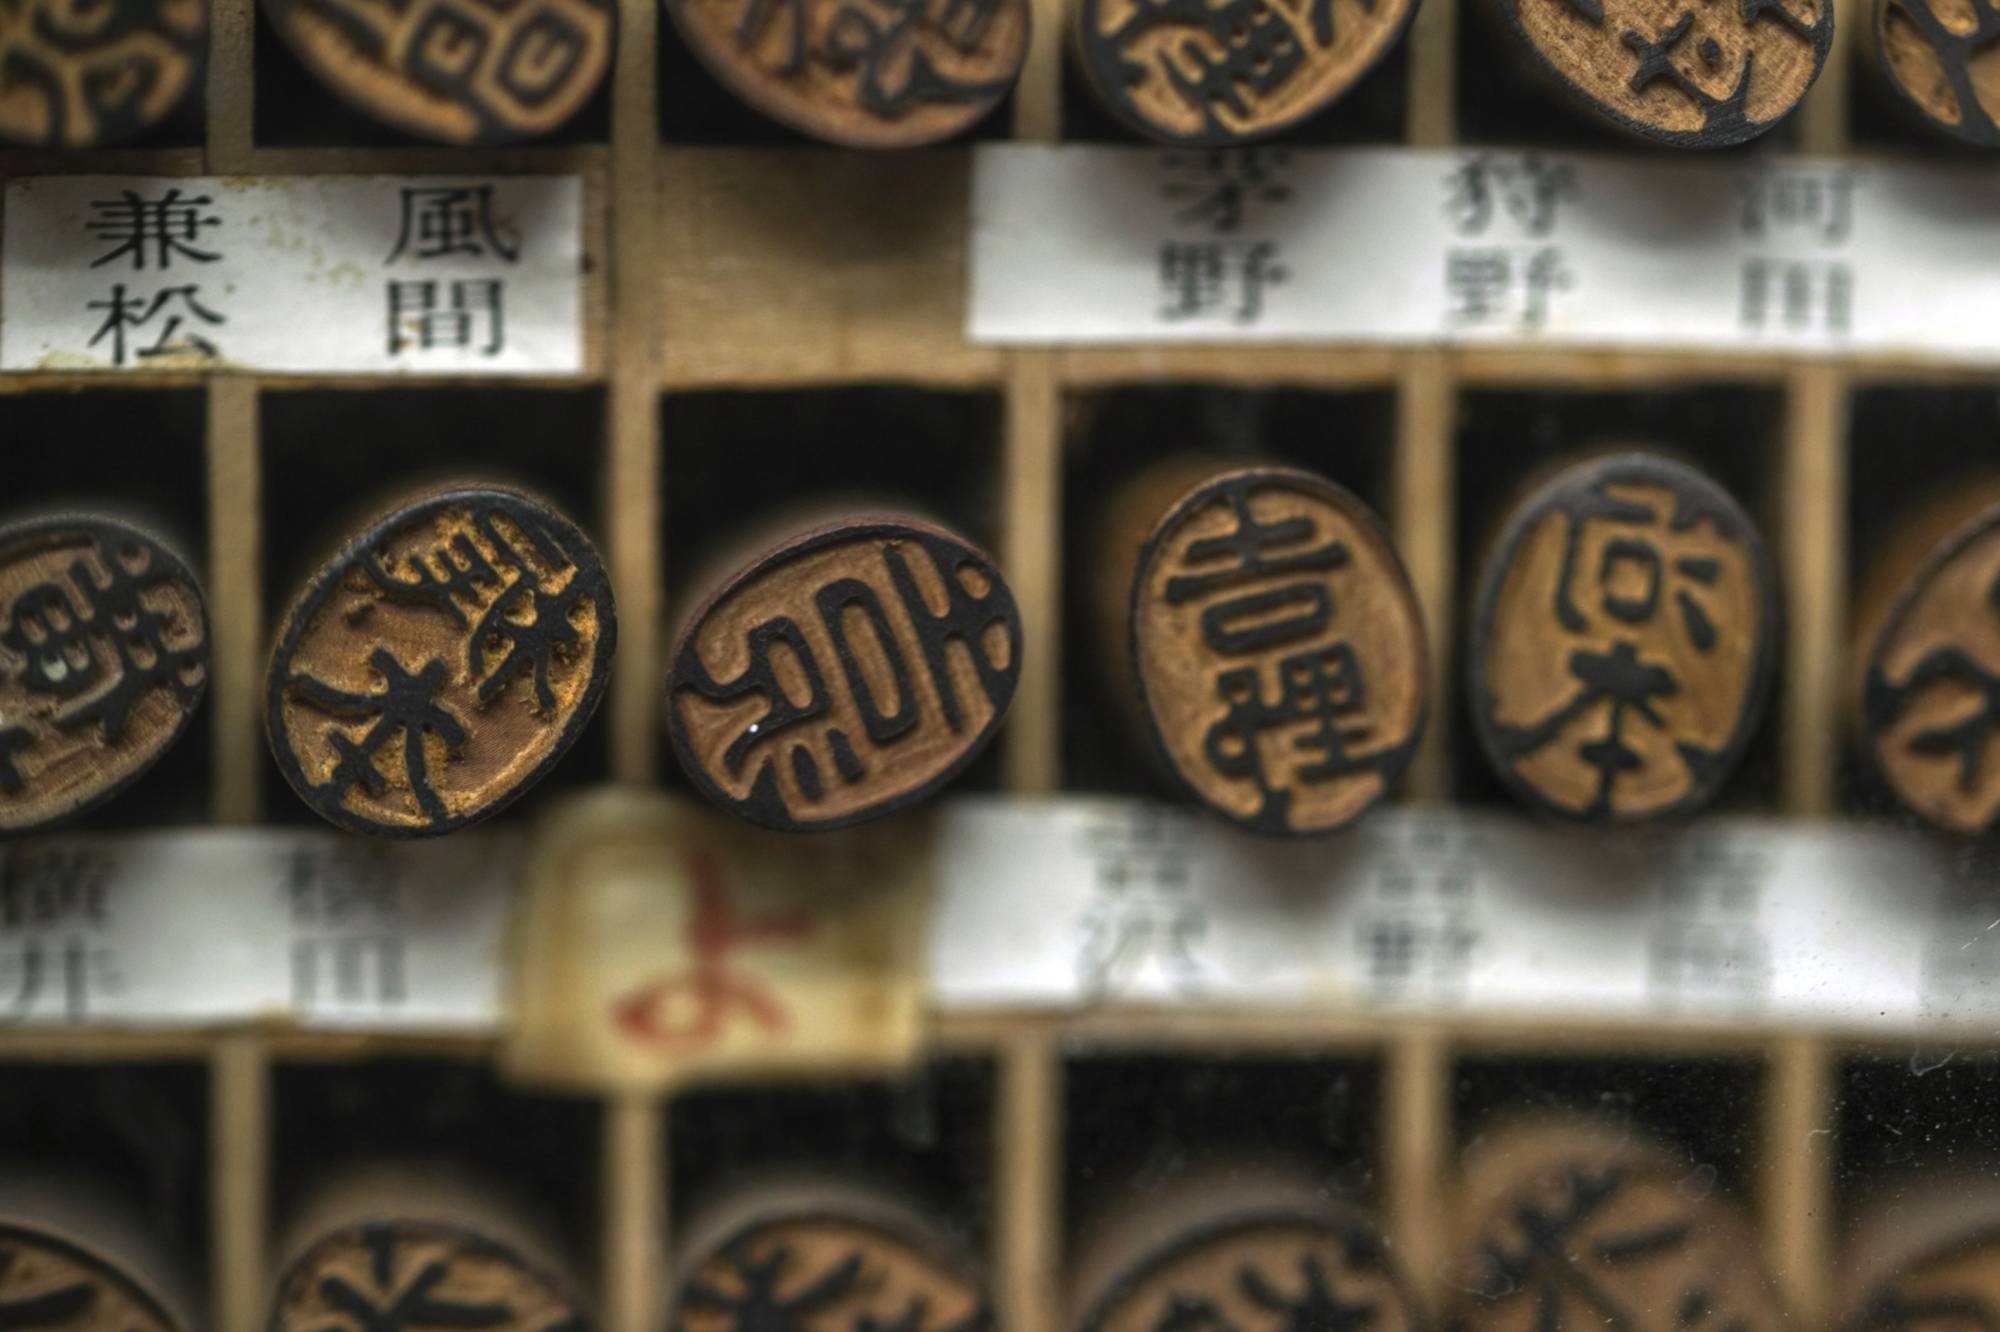 The Yamanashi Prefectural Assembly has called on the central government to make efforts to protect makers of personal seals from reputational damage and help them expand sales channels, including in foreign countries. | BLOOMBERG